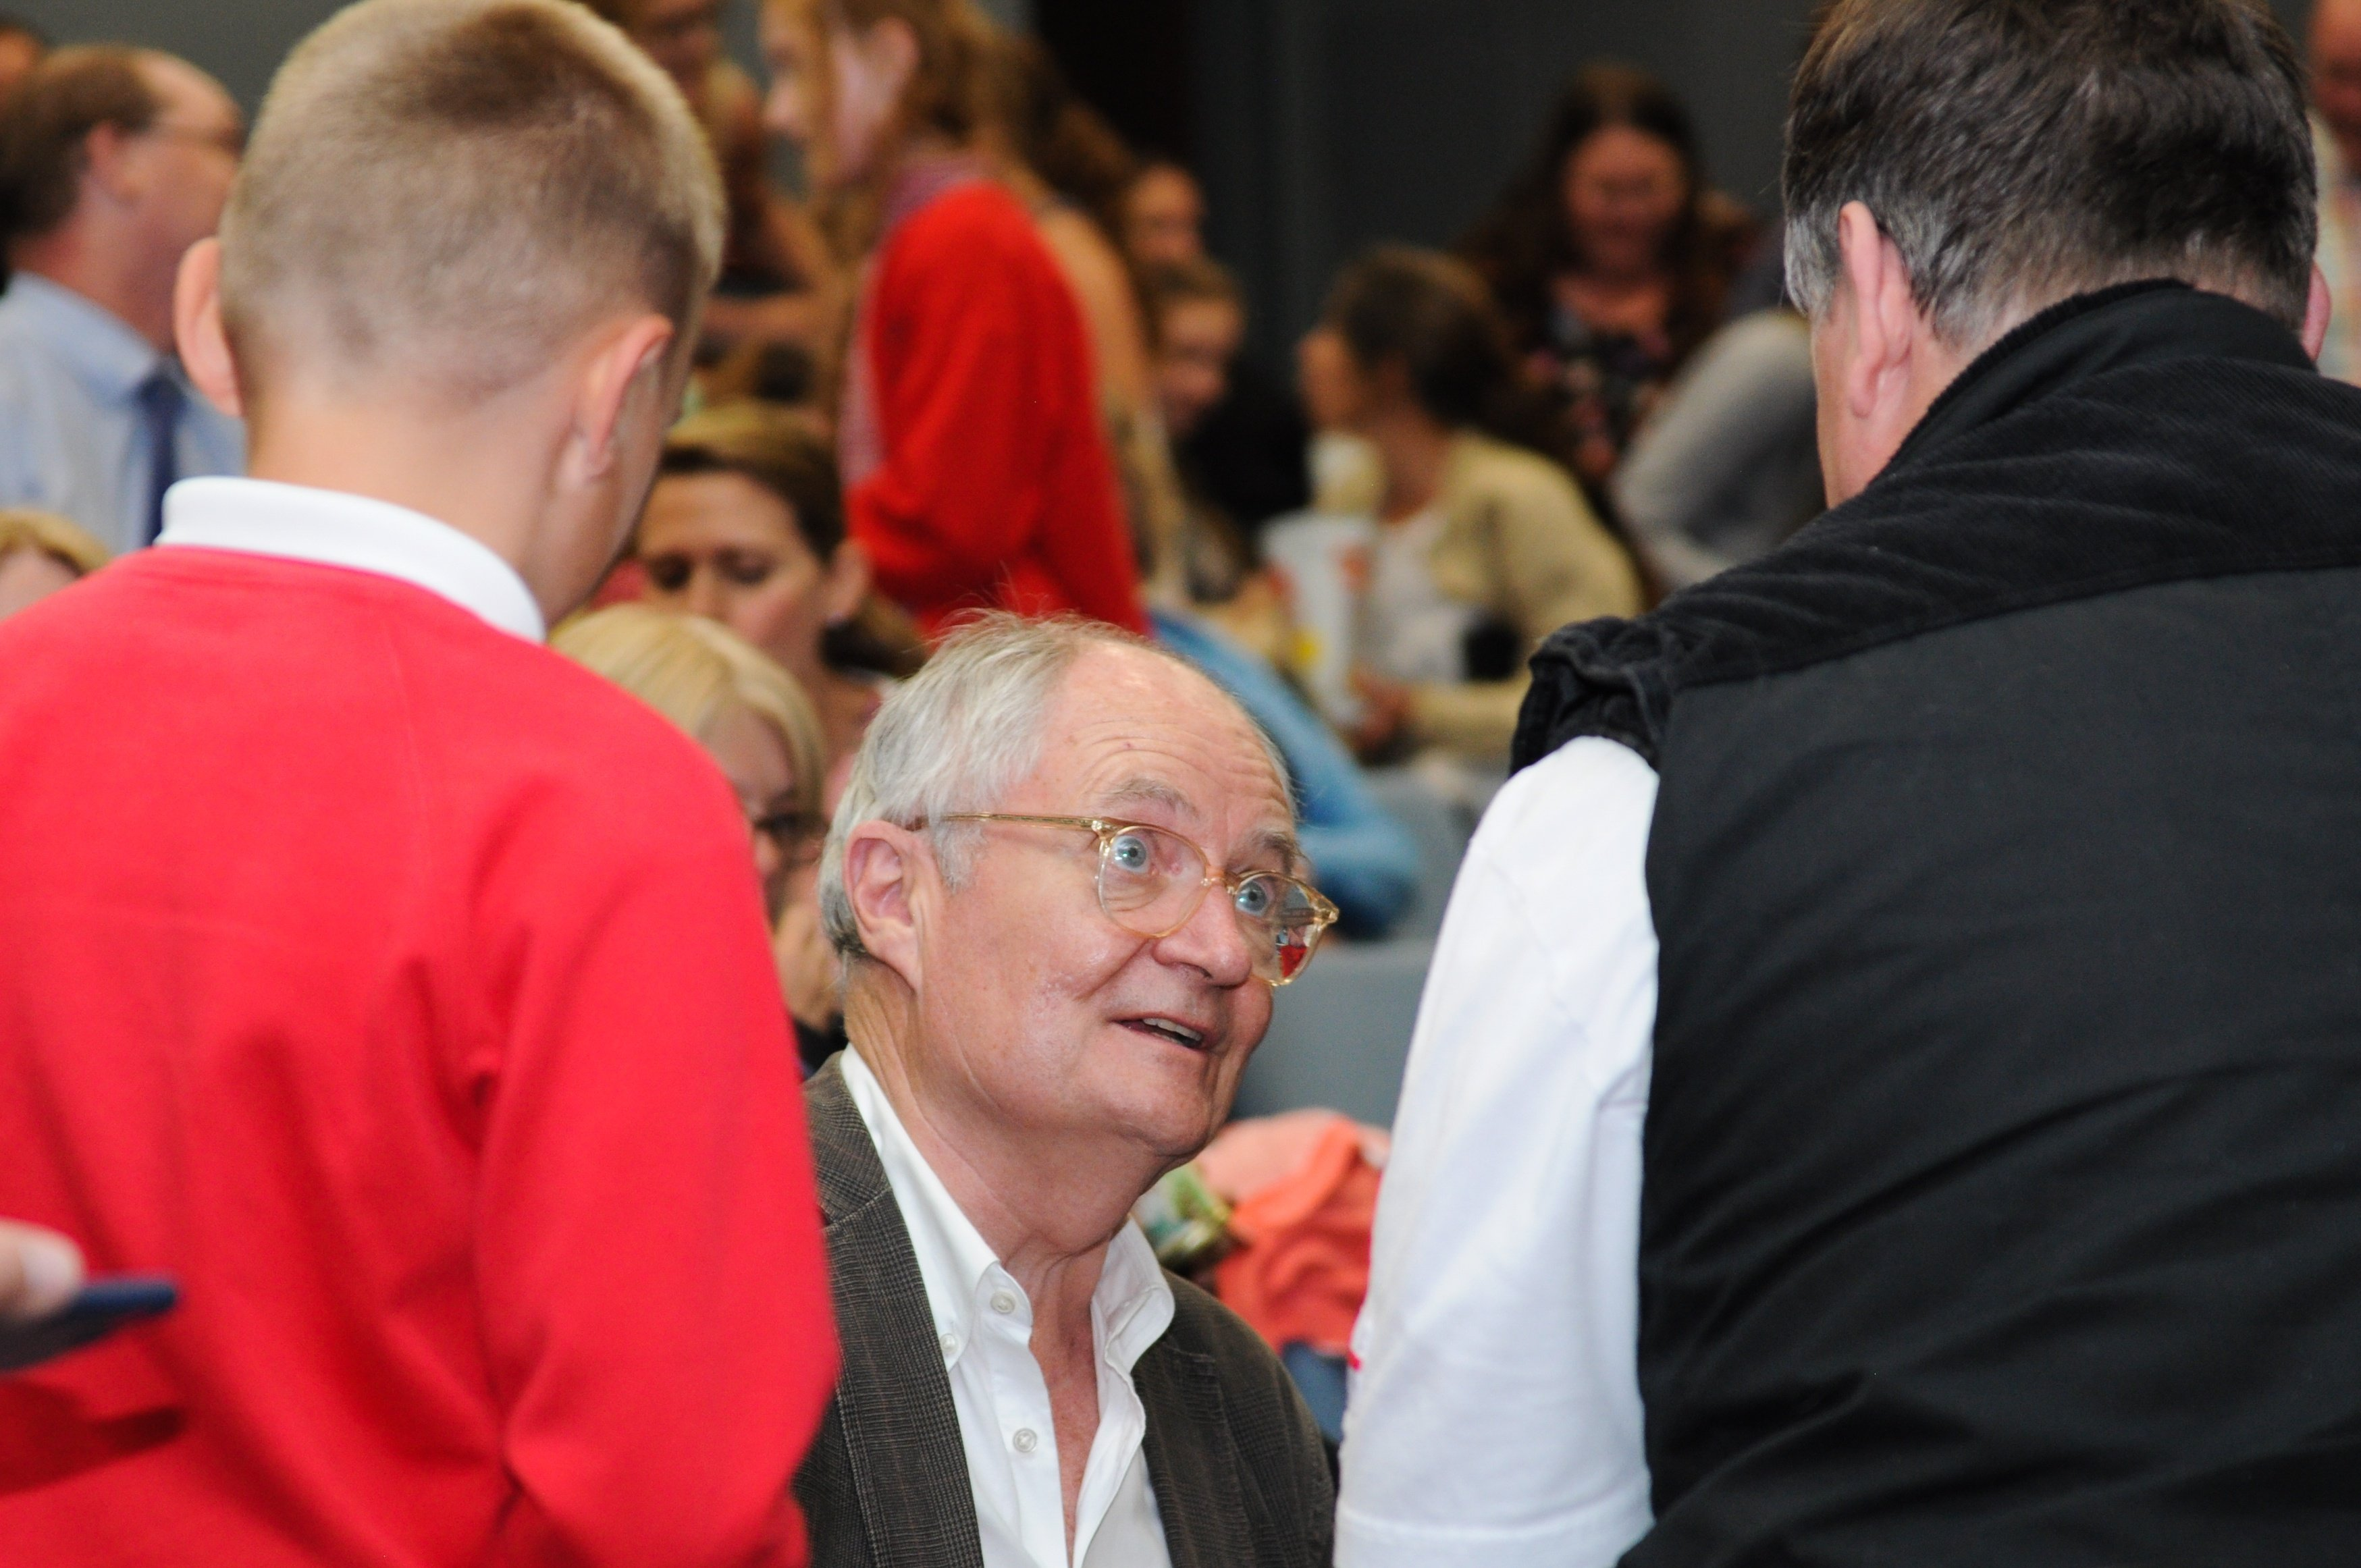 Jim Broadbent at The Venue (6 of 24).jpg